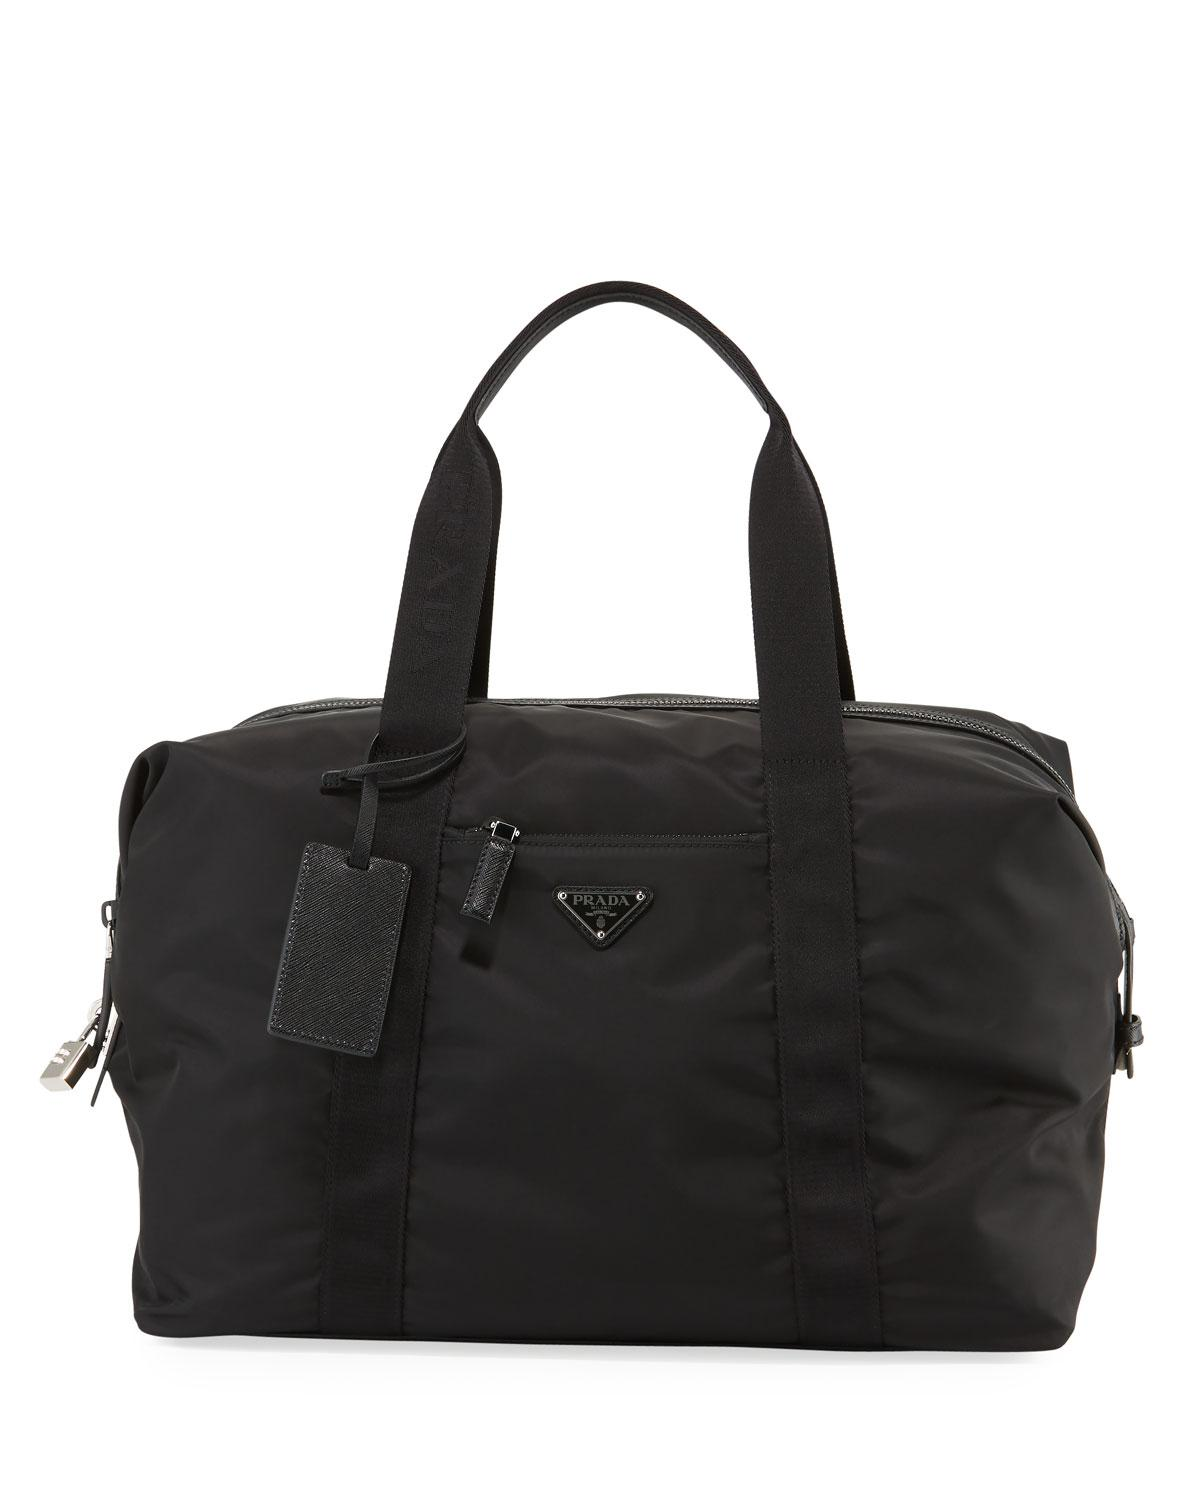 cbec34220f61 ... official store prada black mens nylon saffiano duffel bag for men lyst.  view fullscreen 6738a